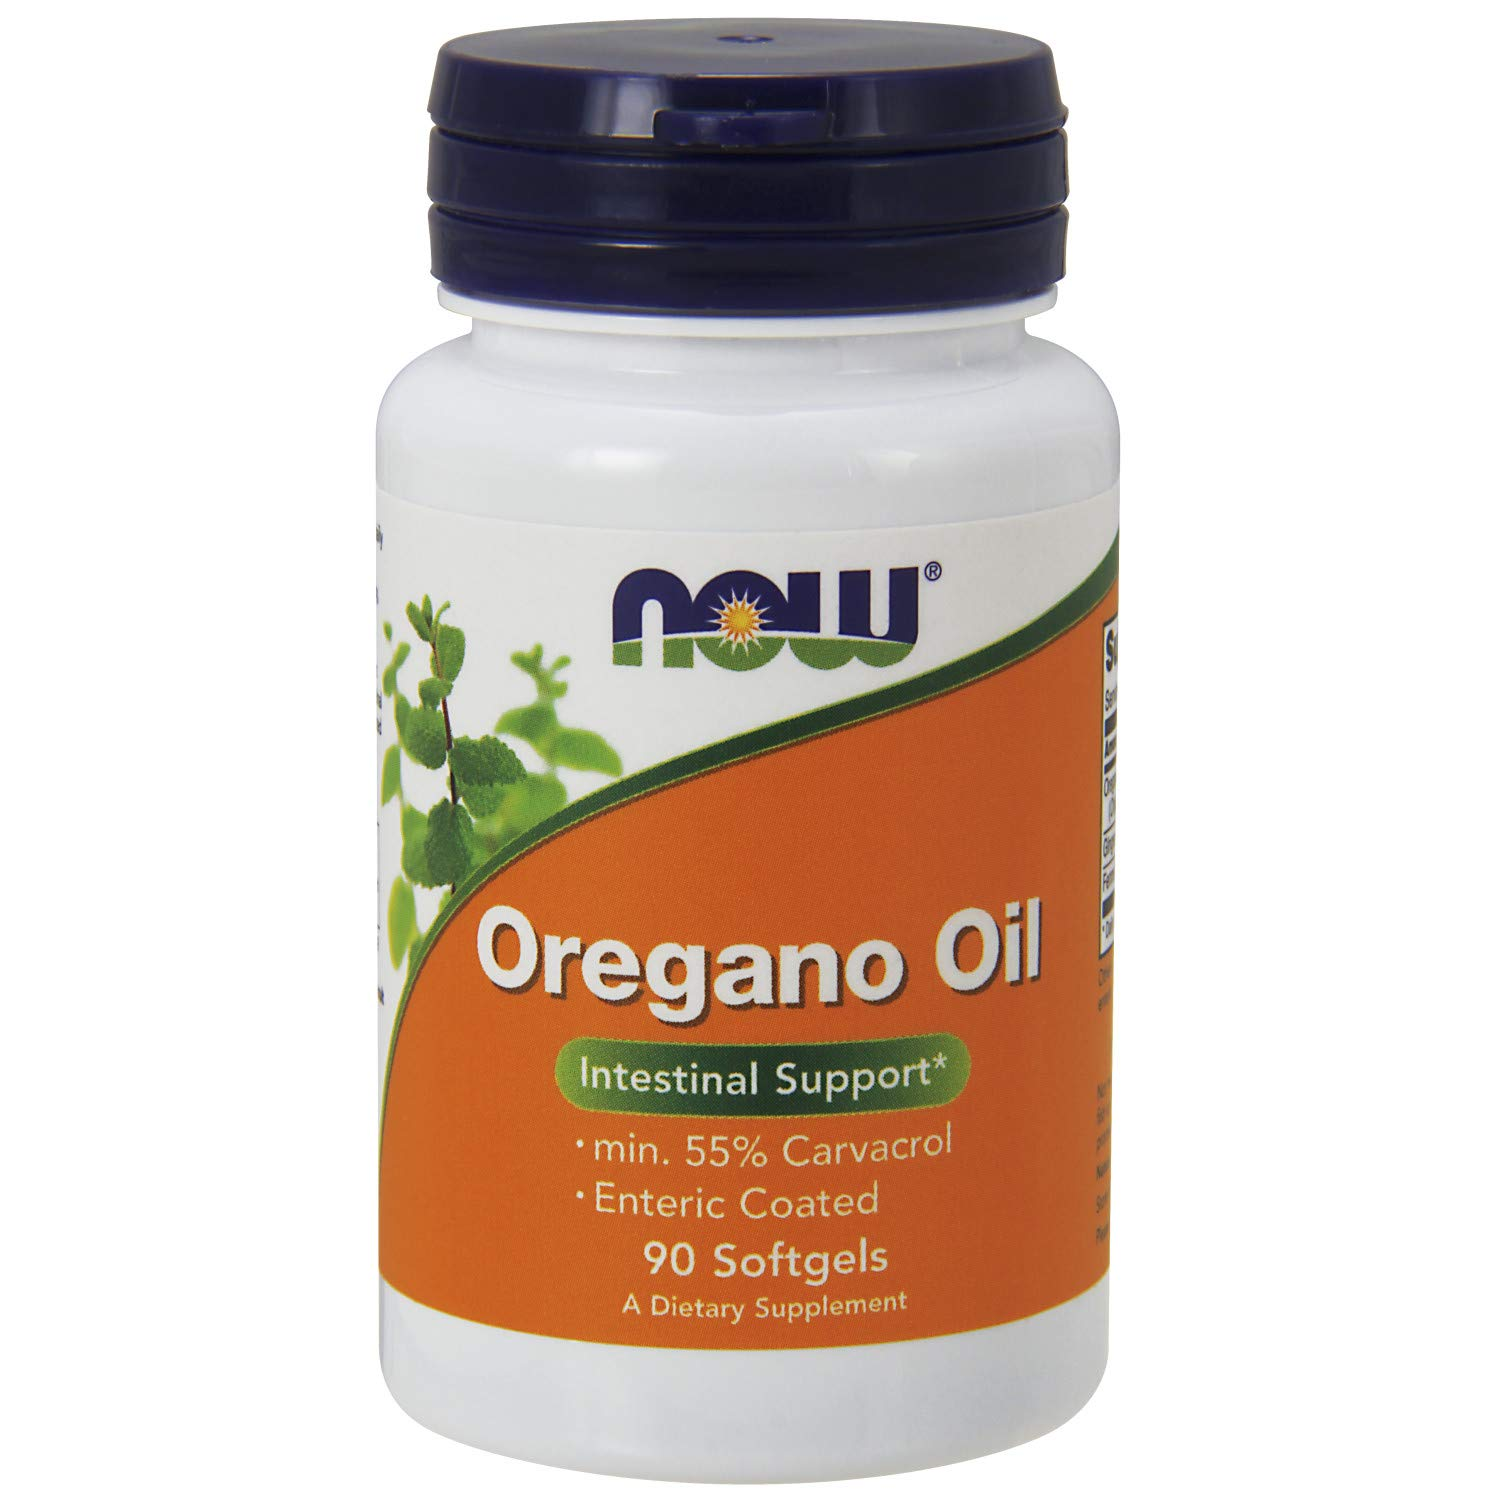 NOW Supplements Oregano Oil with Ginger and Fennel Oil Enteric Coated, 90 Softgels